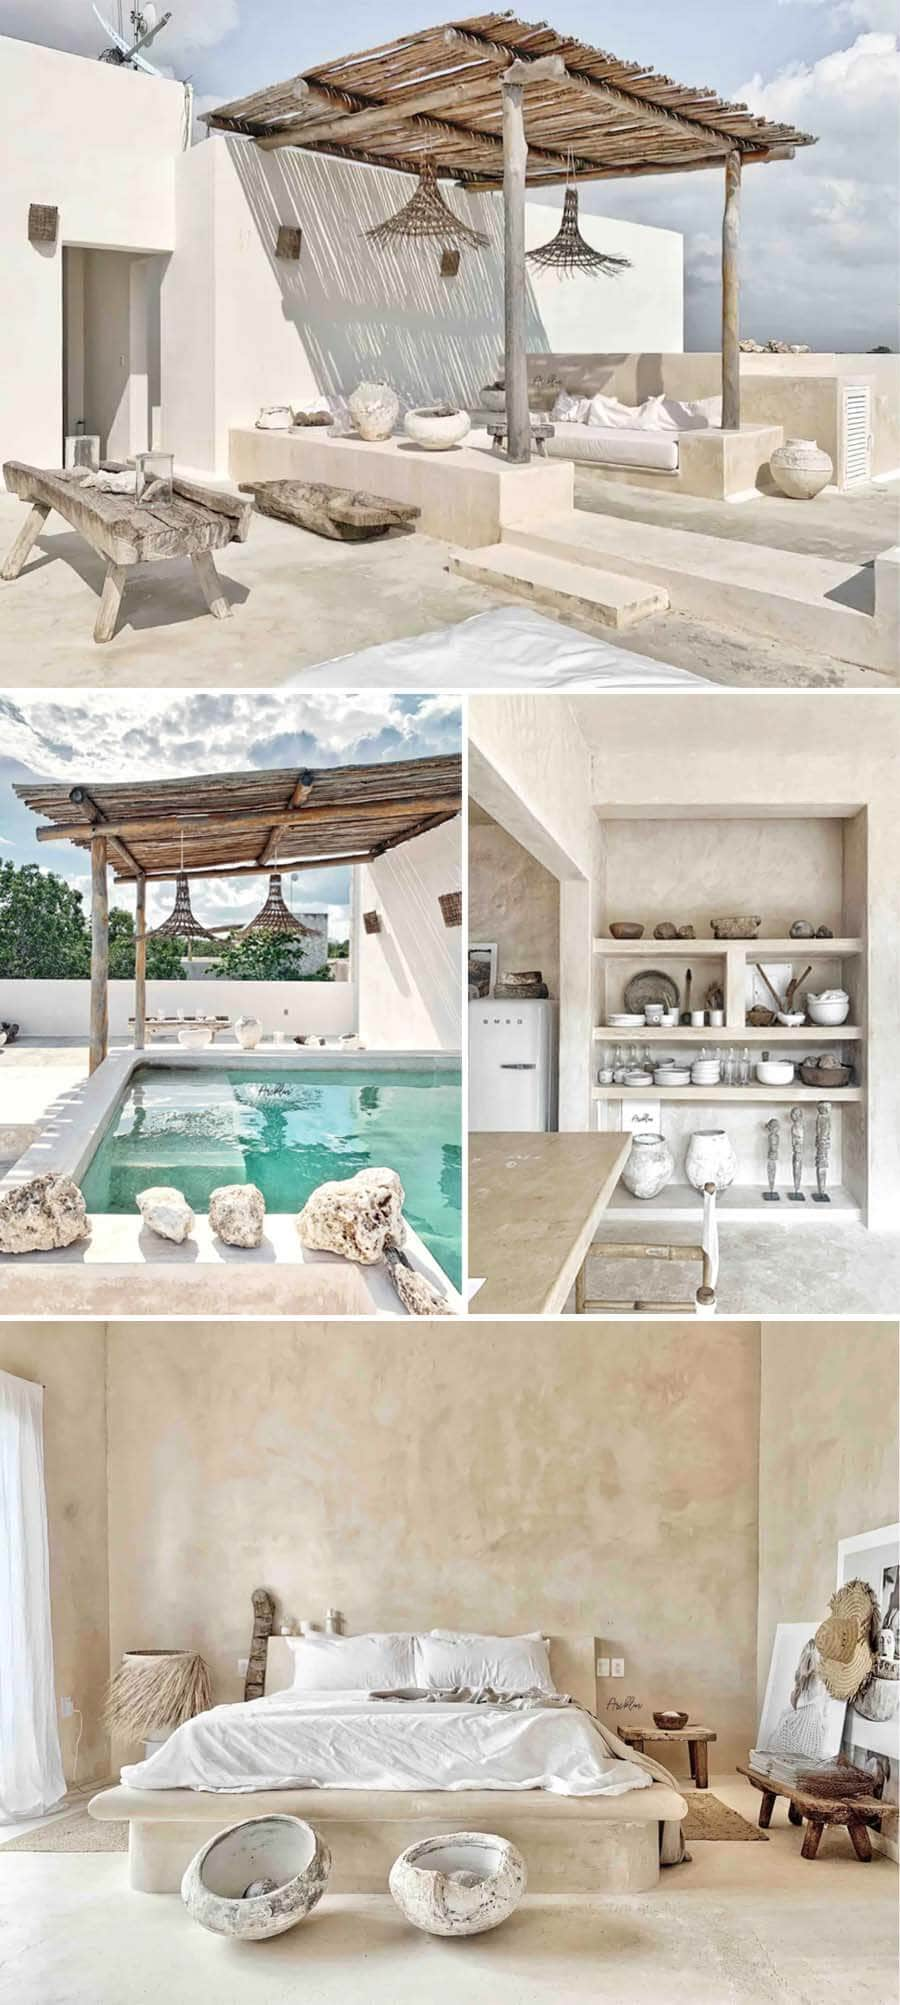 Best Airbnbs in Tulum - Aesthetic apartment in white and neutrals